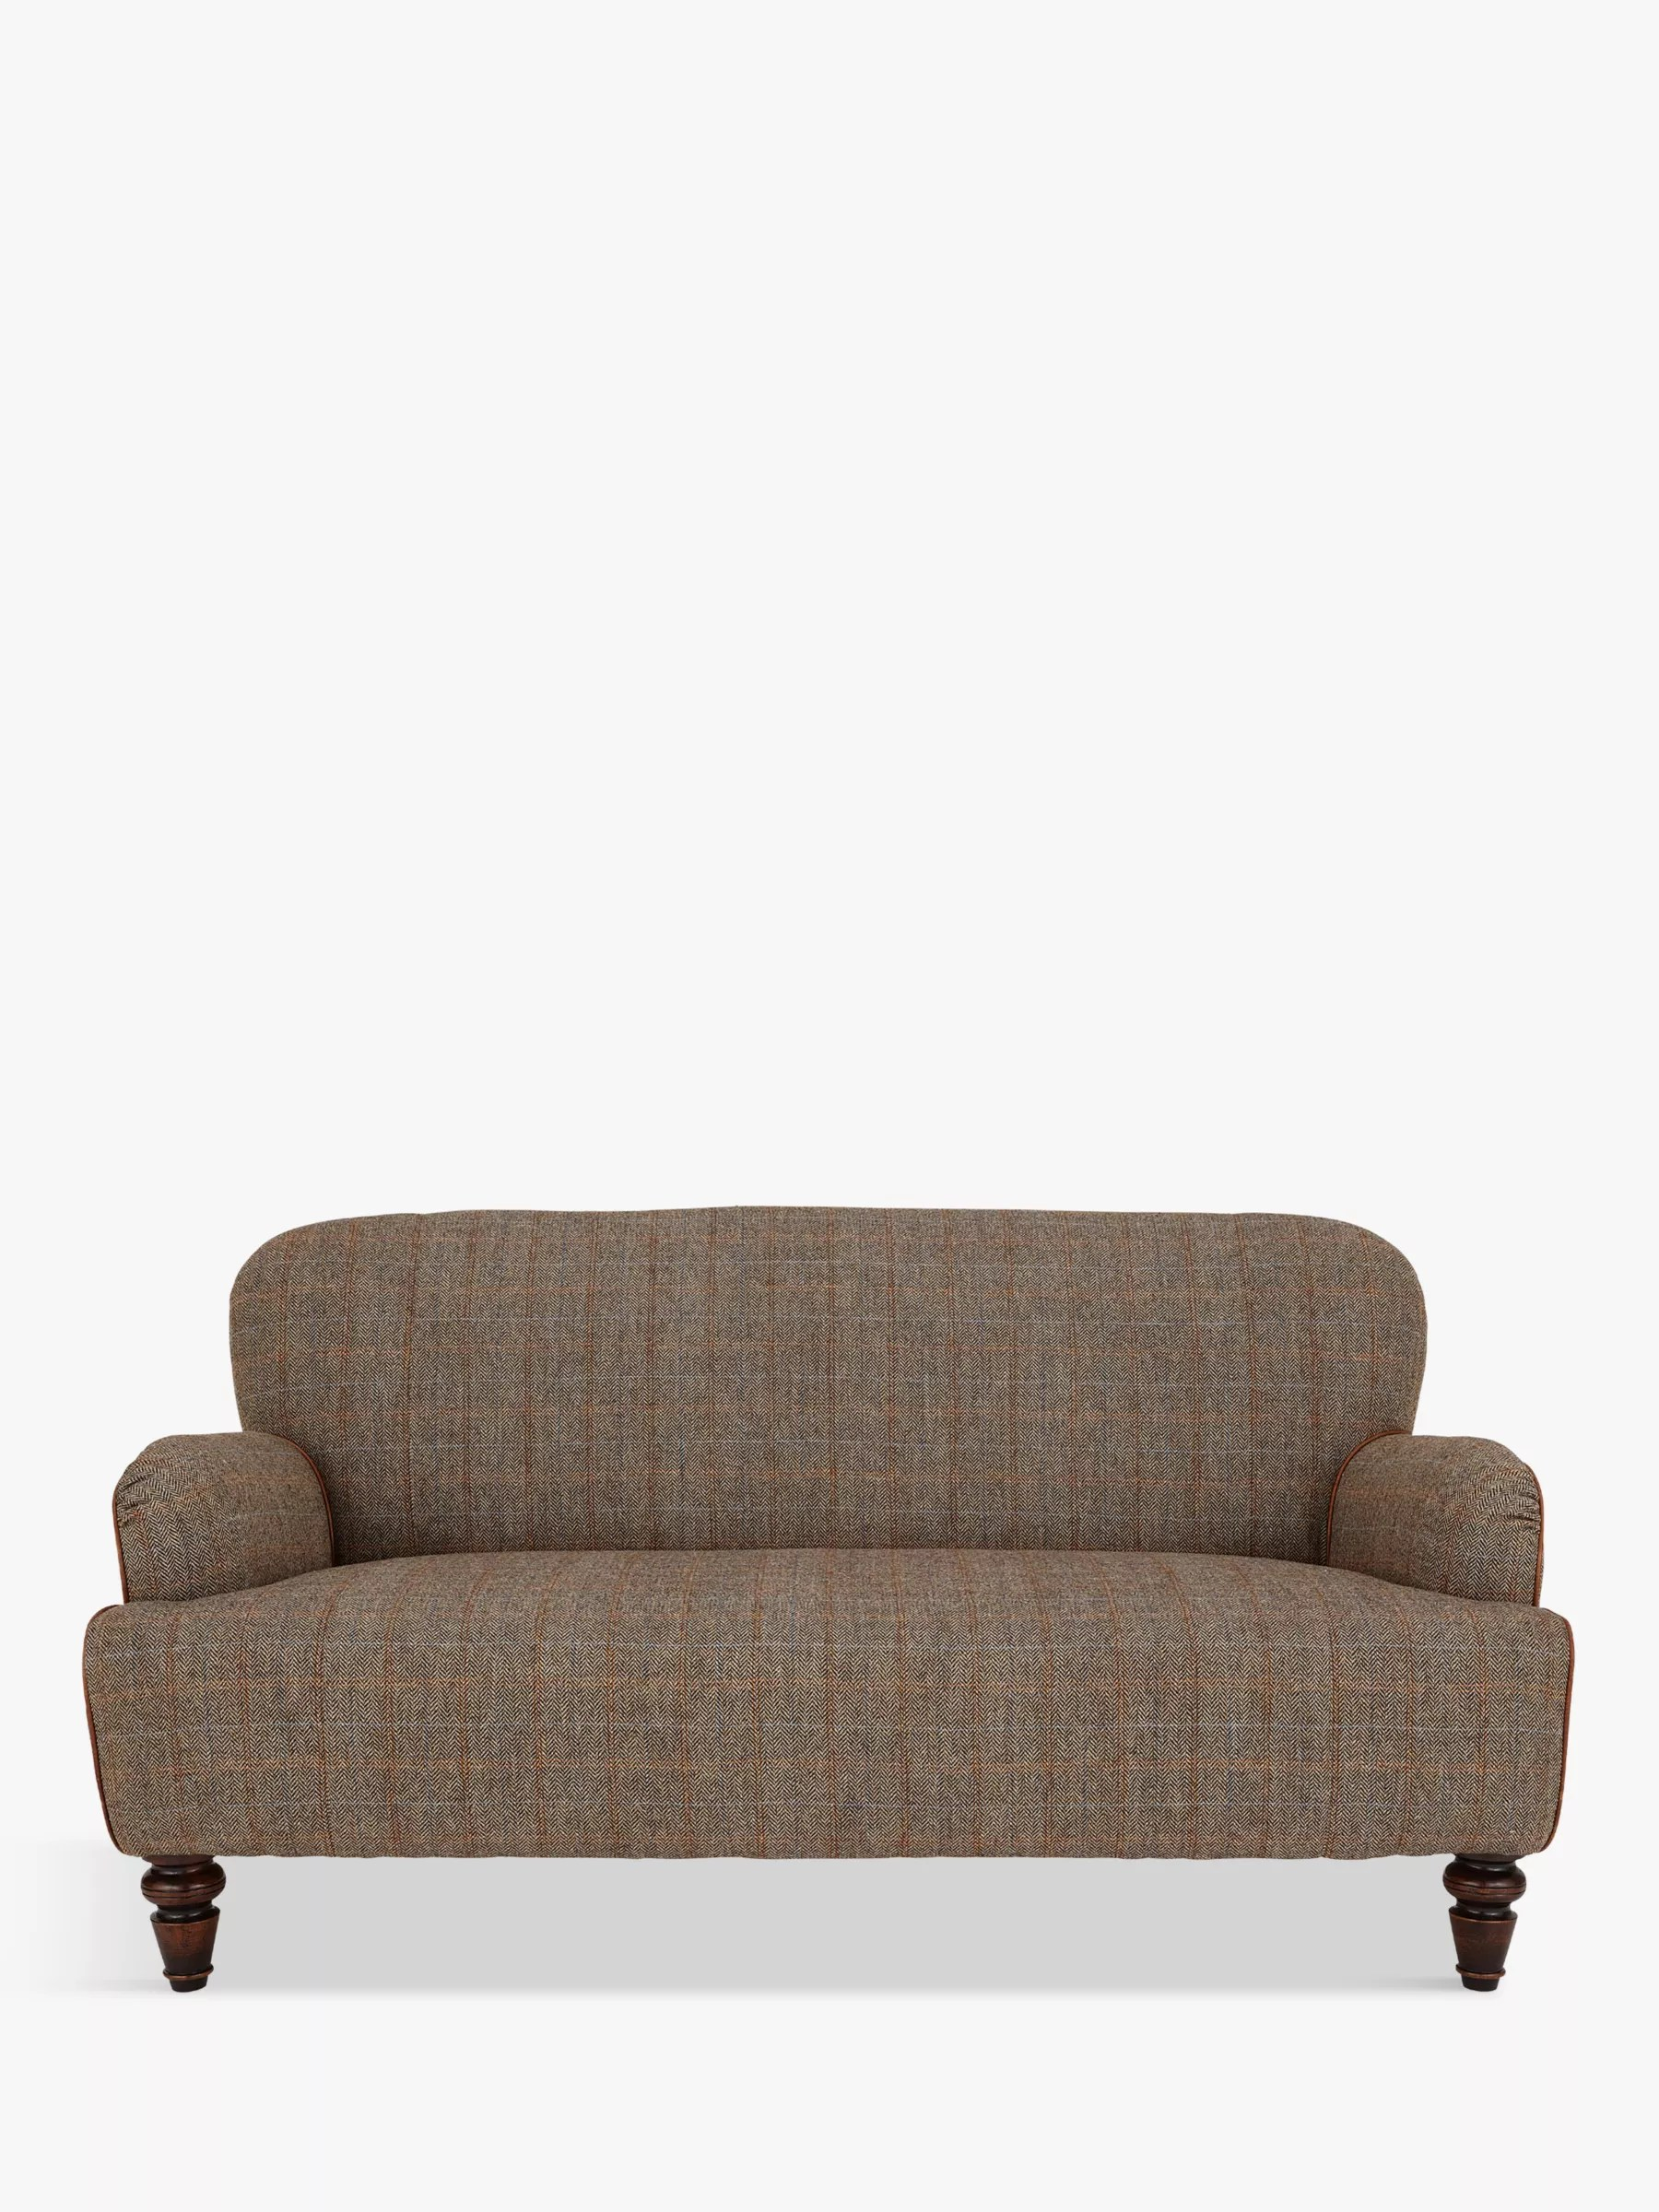 Buy Tetrad Harris Tweed Lewis Petite 2 Seater Sofa Bracken Tan